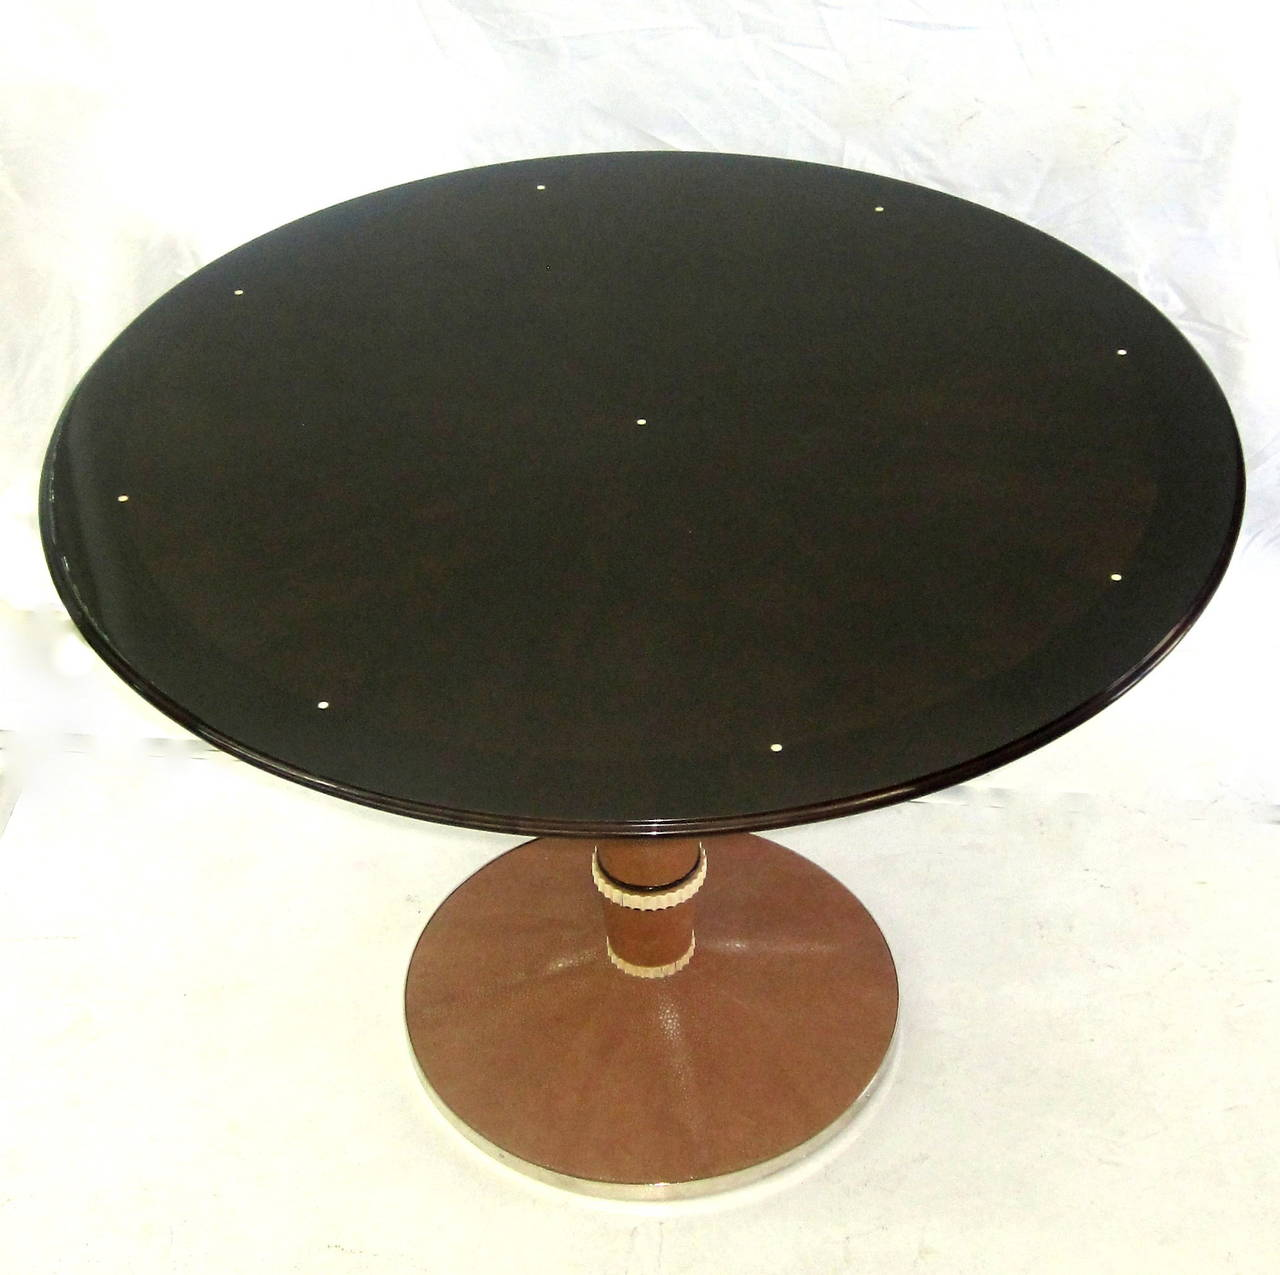 Polished Saddier French Art Deco Table For Sale